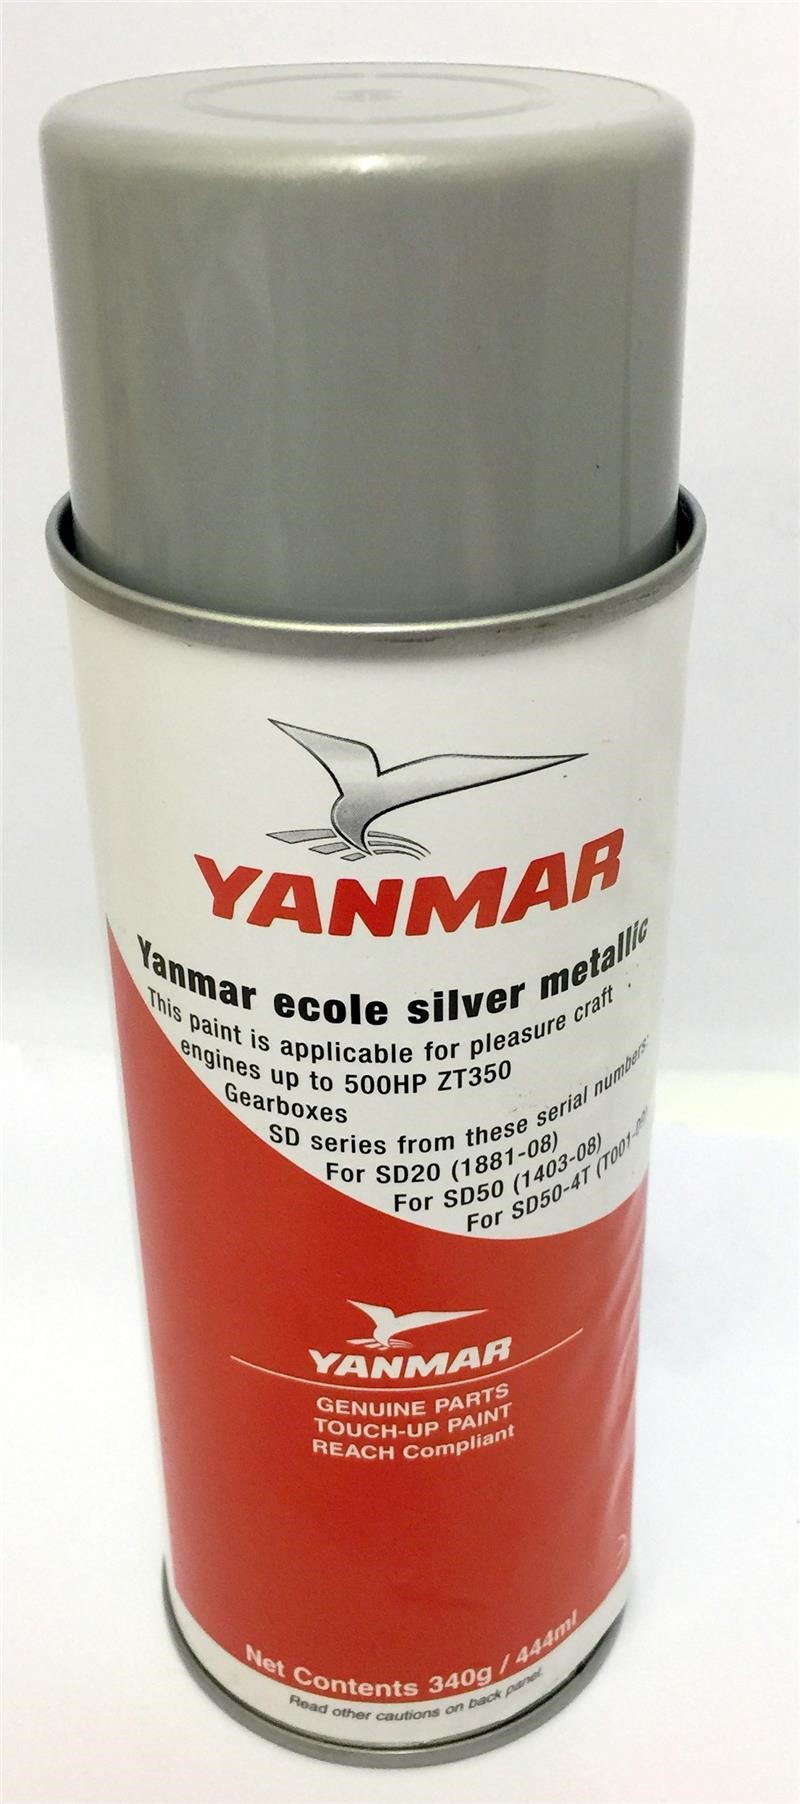 Yanmar Paint-001 Silver Metallic Touch-Up Paint